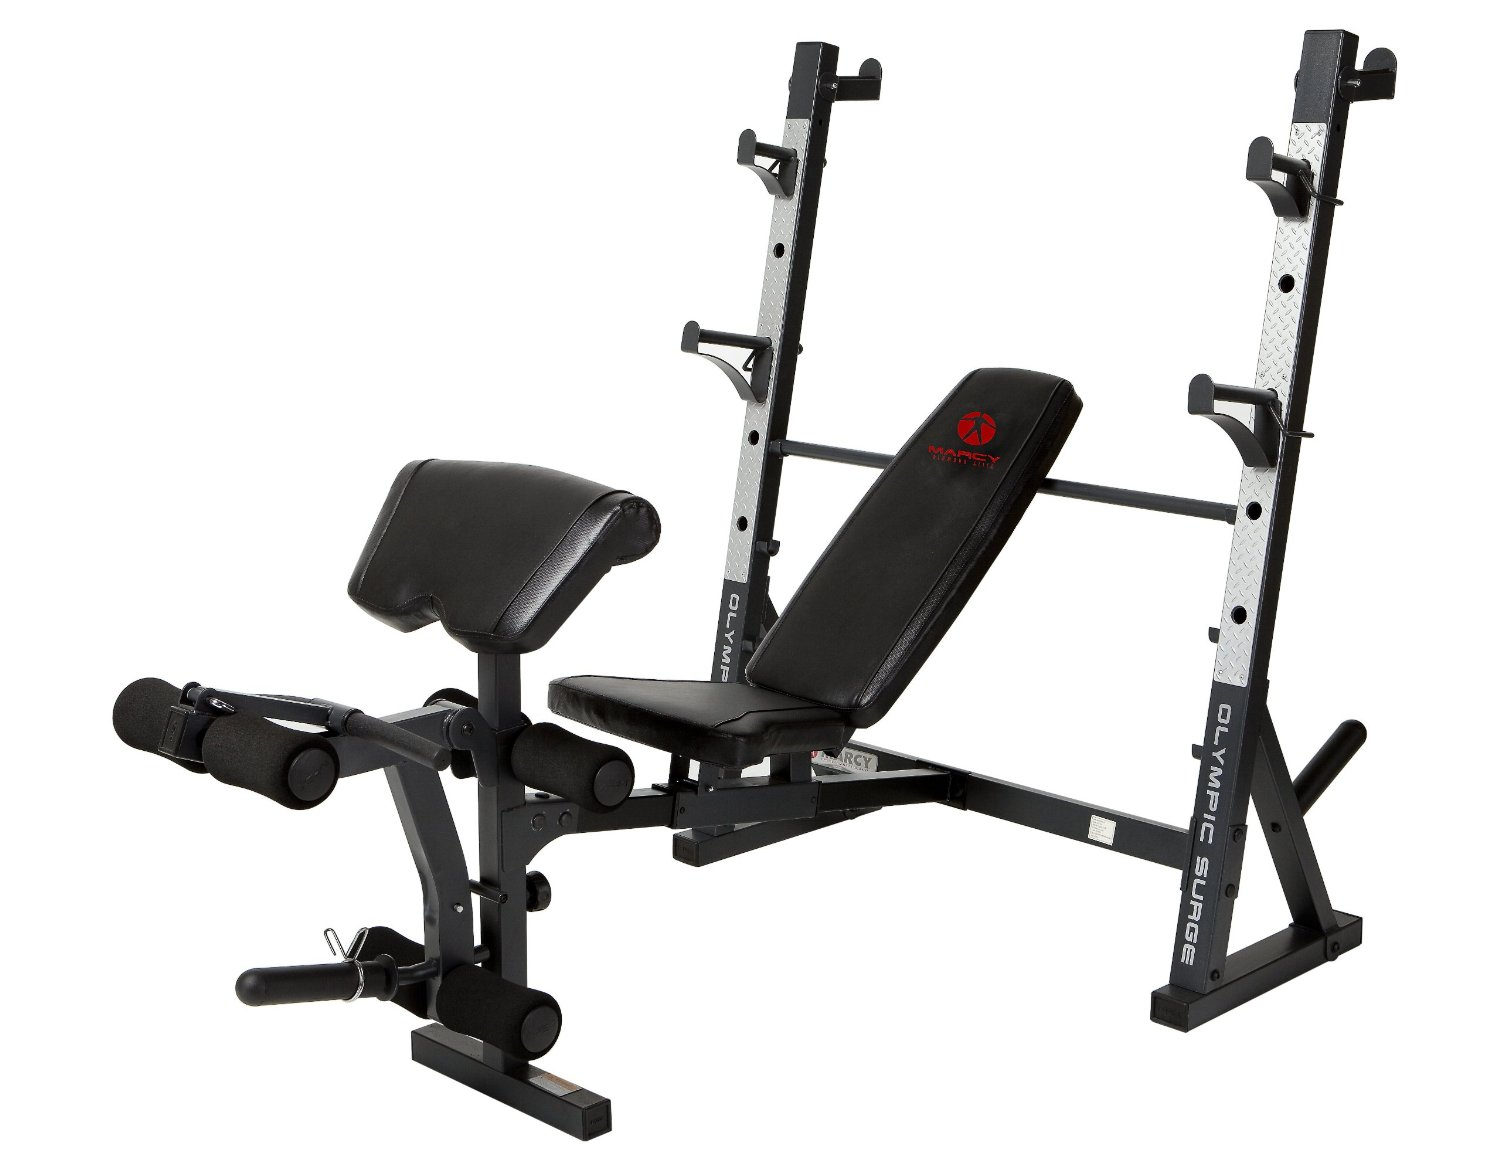 Marcy Diamond Md 857 Olympic Surge Bench Review